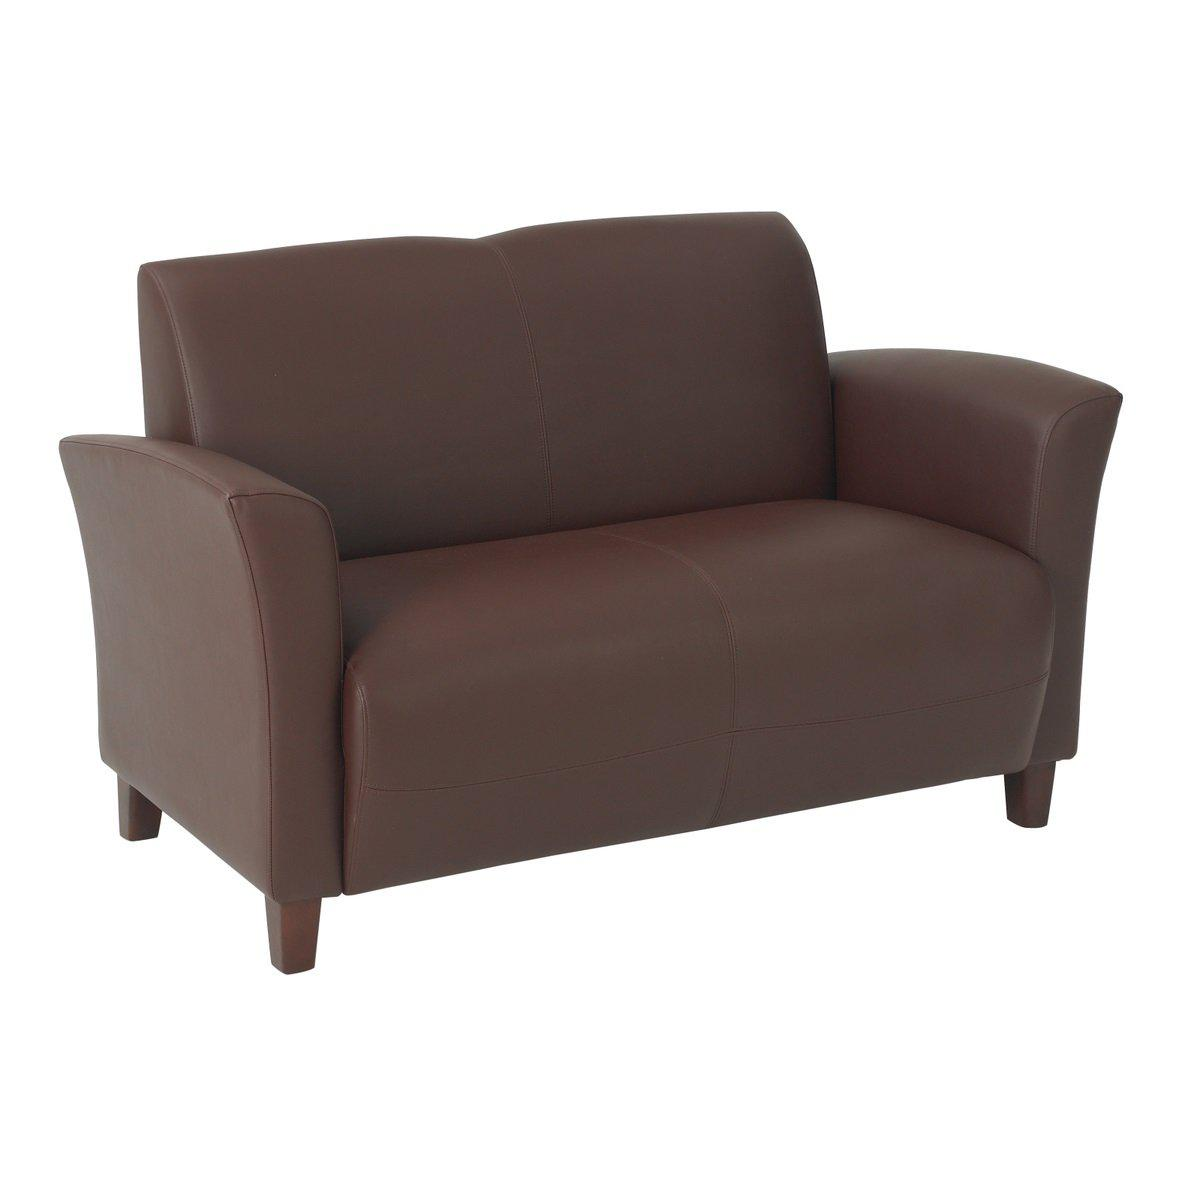 Breeze Bonded Leather Loveseat with Cherry Finish Legs